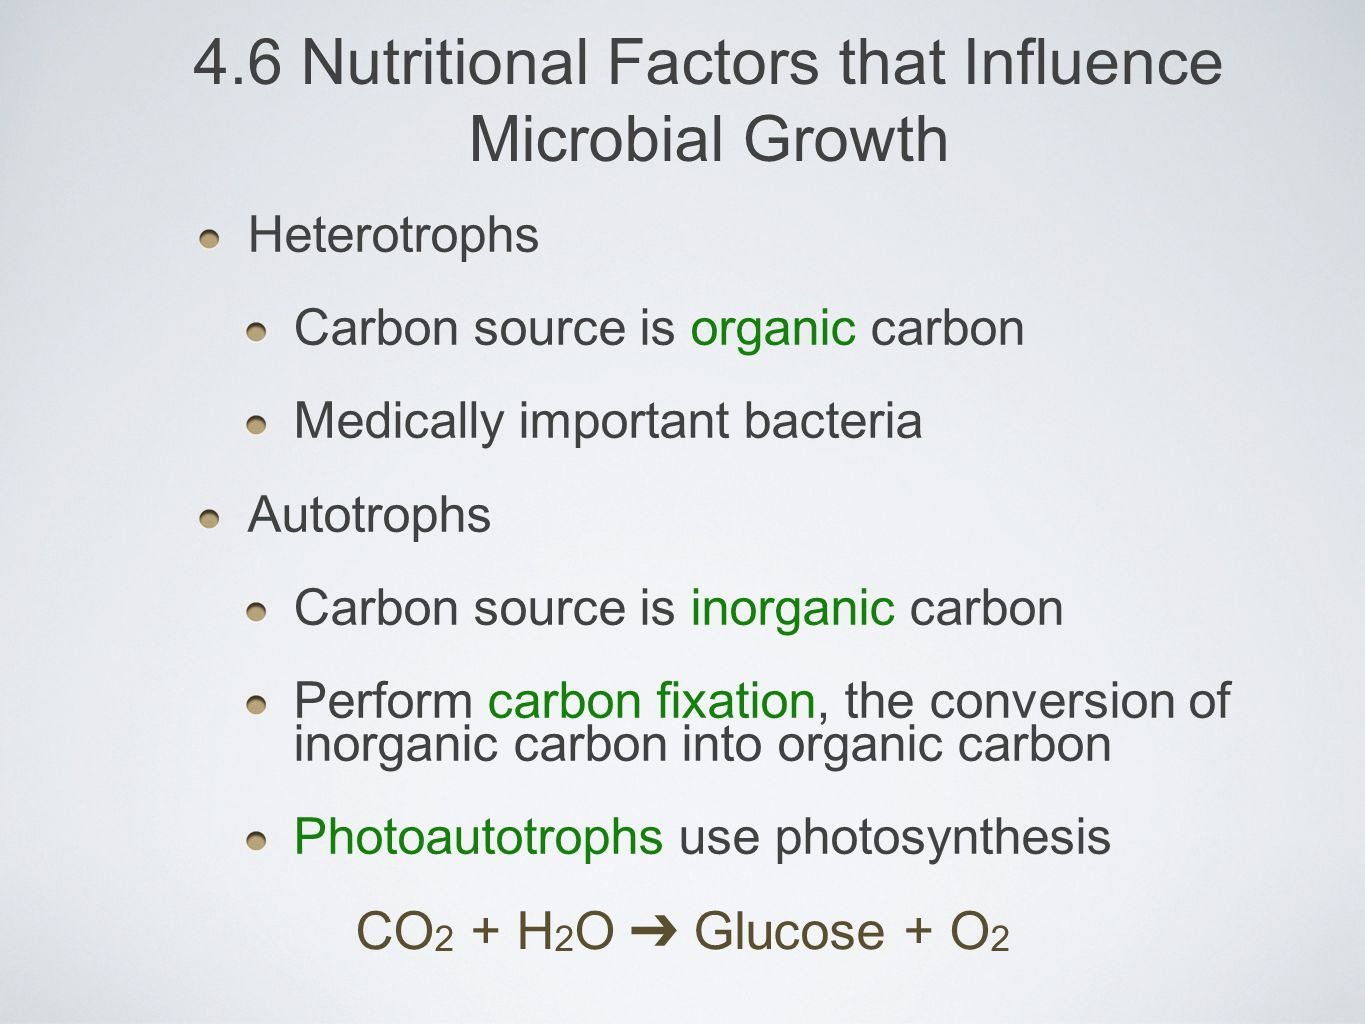 4.6 Nutritional Factors that Influence Microbial Growth